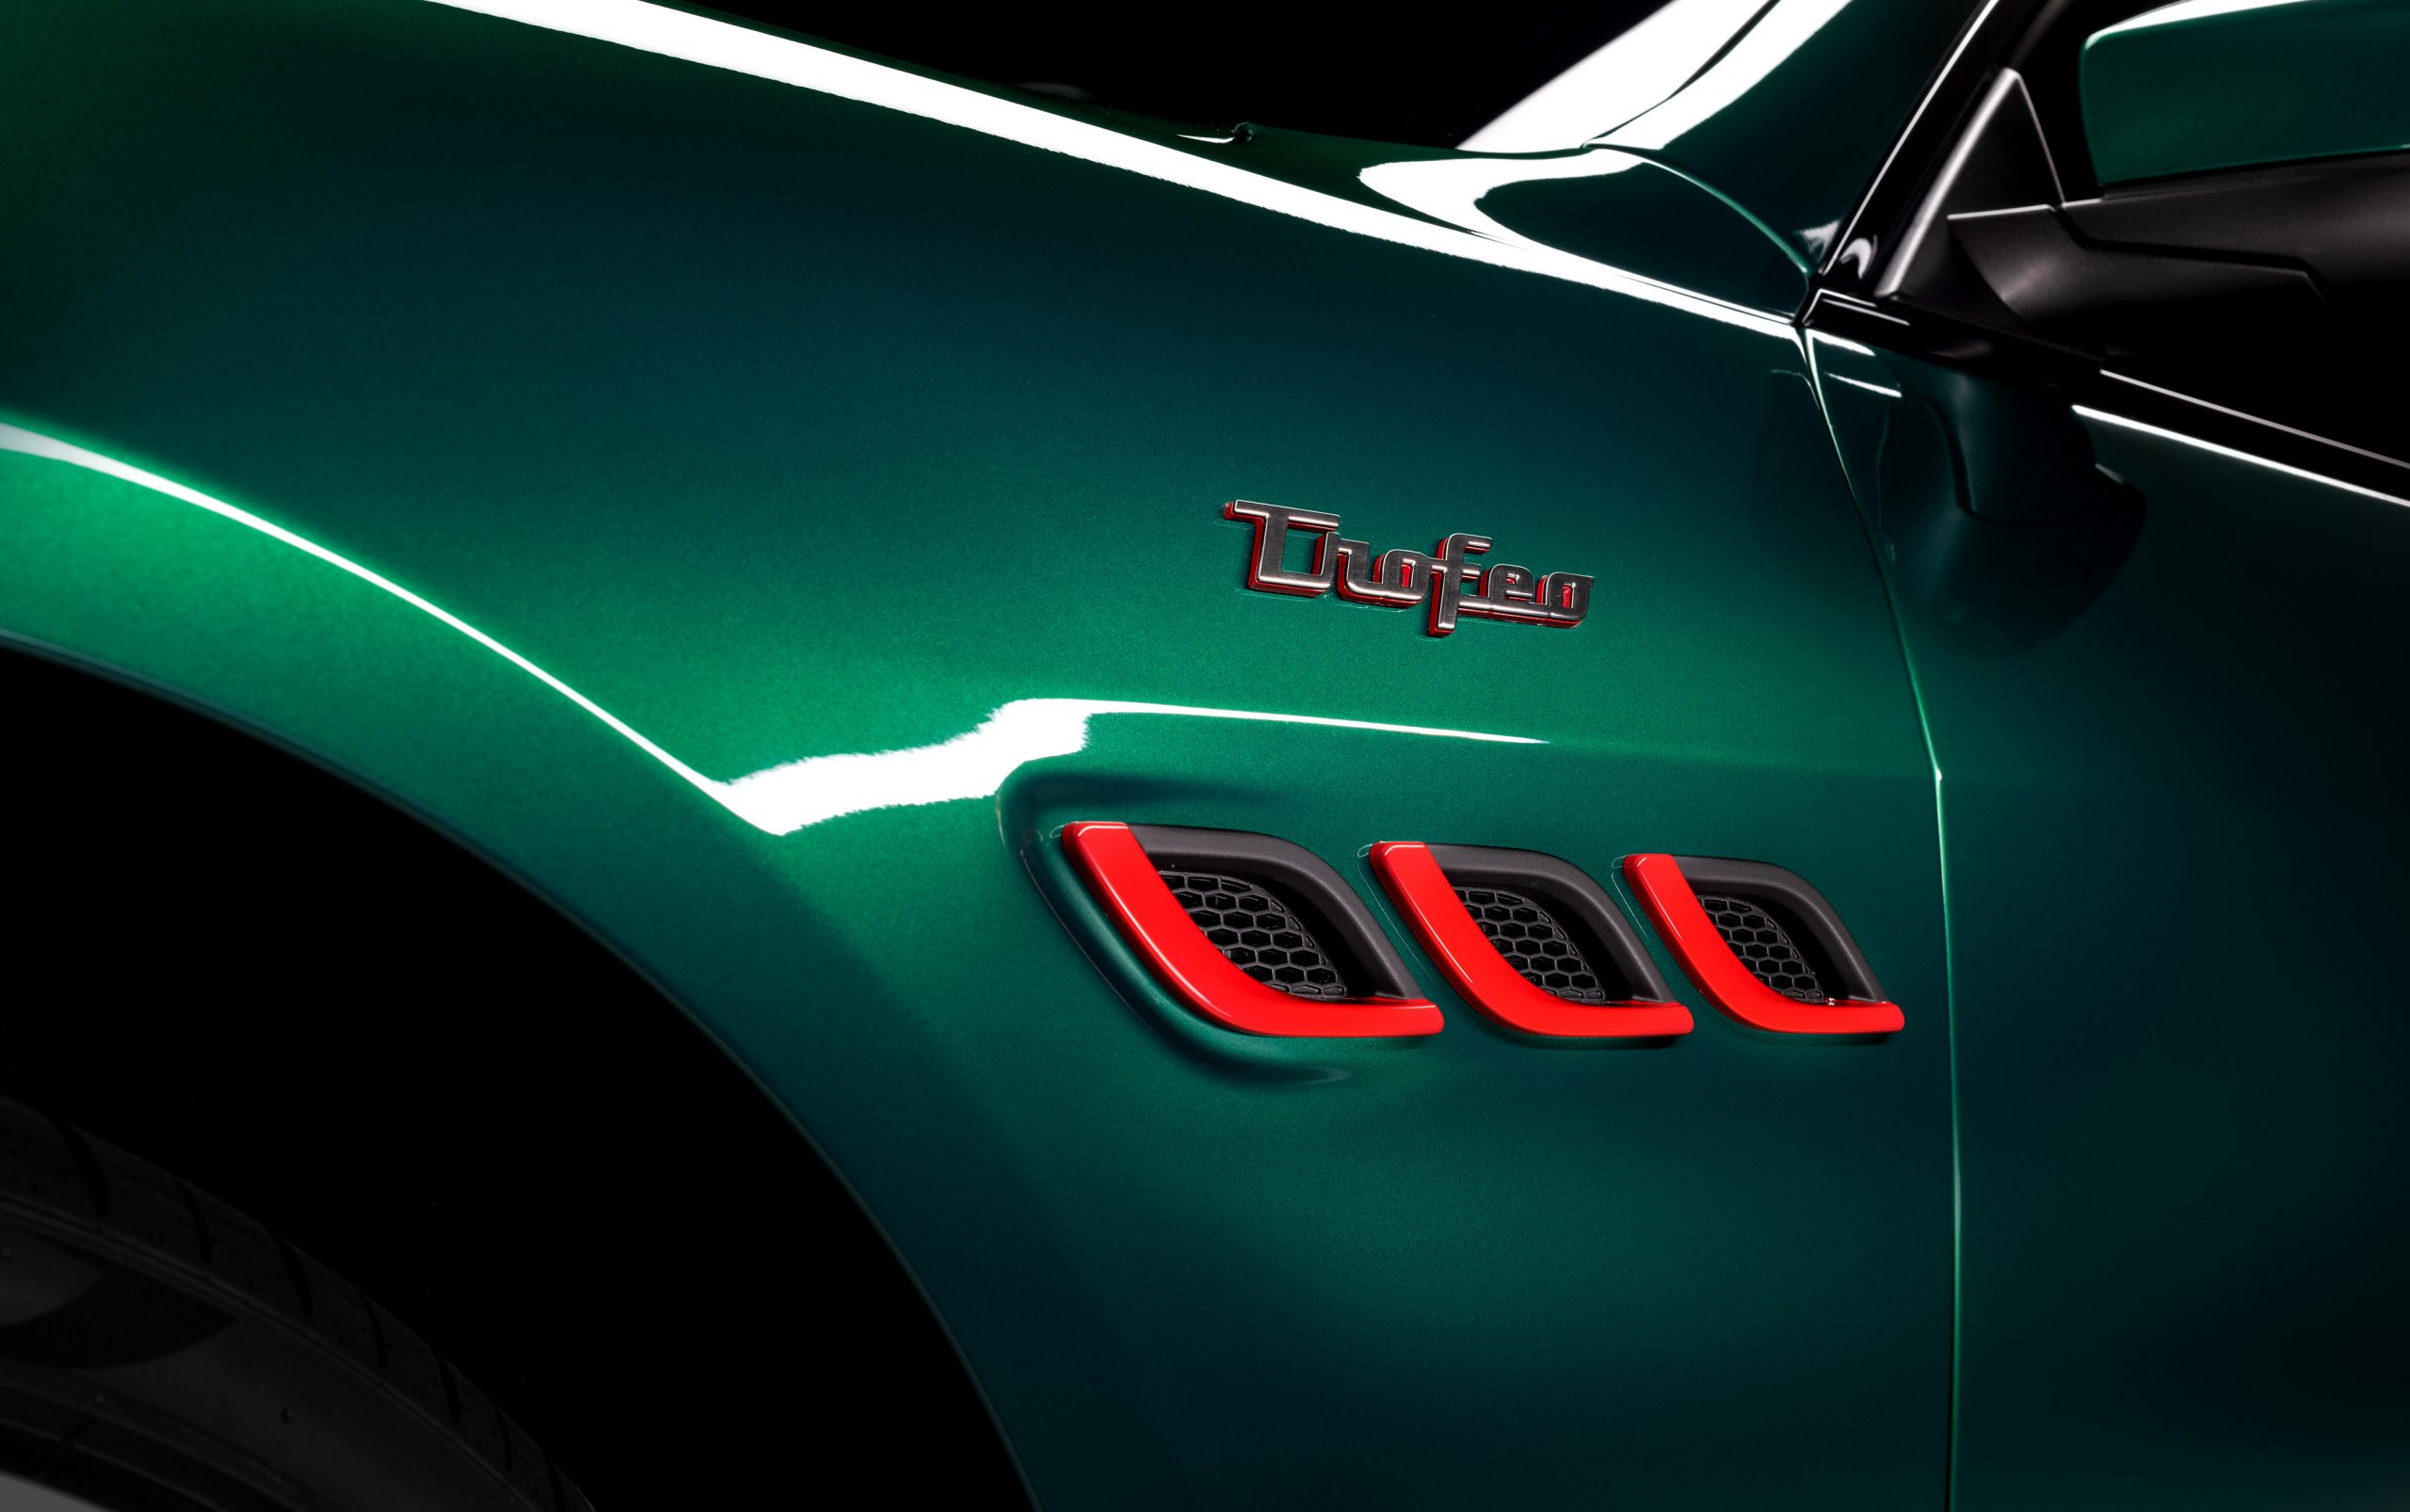 green trofeo quattroporte front quarter panel badging